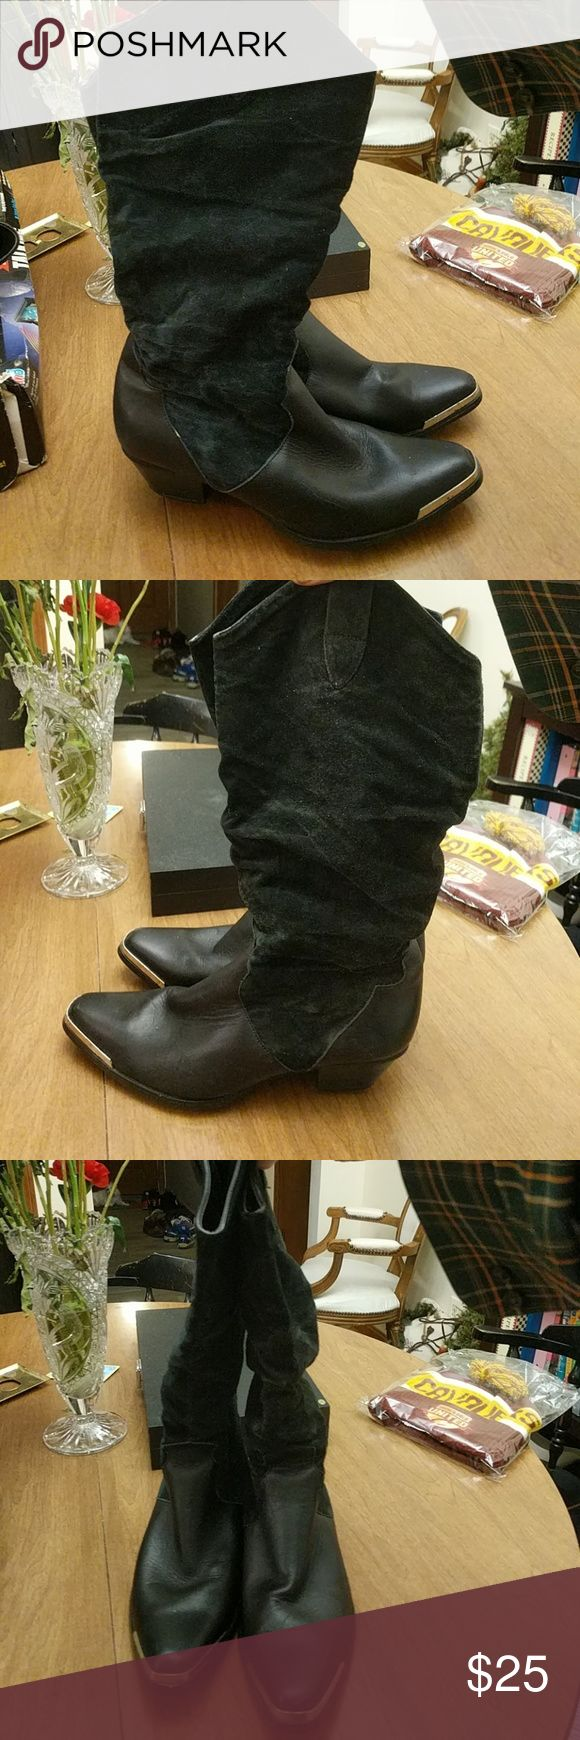 9 M Oak Tree Farms black Suede western boots Up for bid is a nice, pre-owned pair of women's 9 M Oak Tree Farms black Suede and flat Leather pull on cowboy Boots Western size 9 m. There is metal trim around the toes.the shanks are a more flimsy material  The shanks have some fading, amd bit of wear on the tops of the shanks, but the uppers and soles are in good condition overall Shoes Heeled Boots